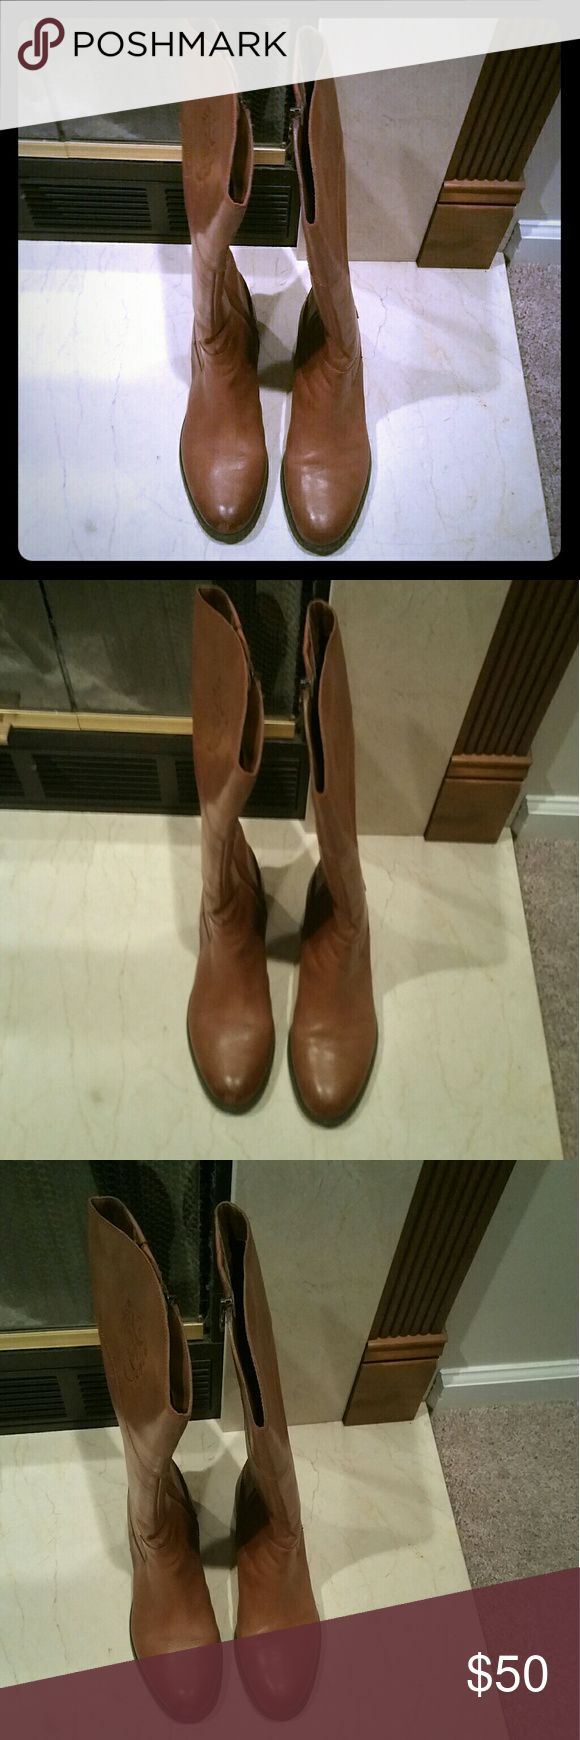 Rider boots Camel color Etienne Aigner Shoes Heeled Boots